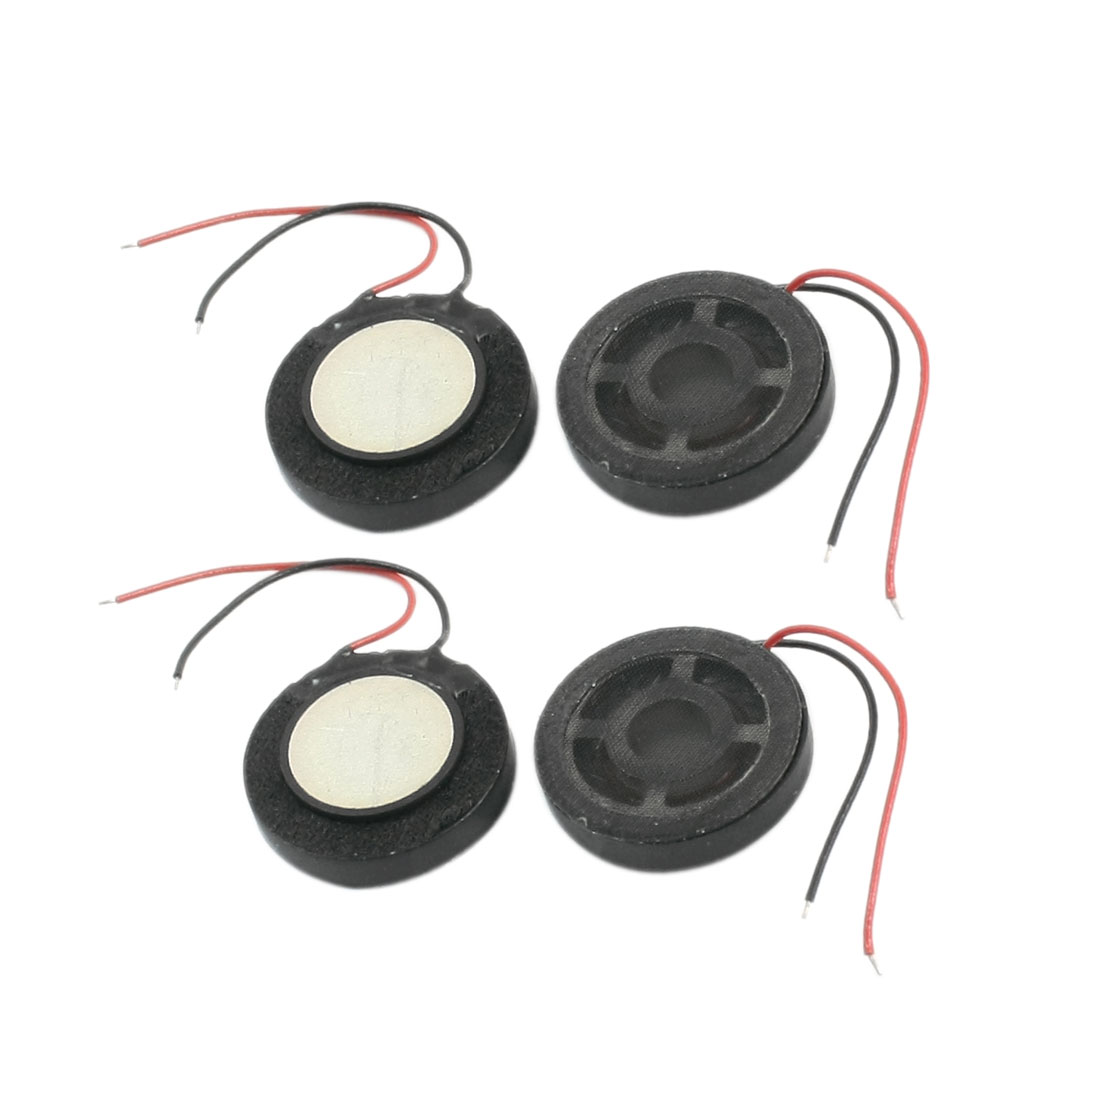 4Pcs 1W 8 Ohm Dual Wire Connecting Self-adhesive Type Round Mini Magnetic Phone MP3 MP4 Player Speaker